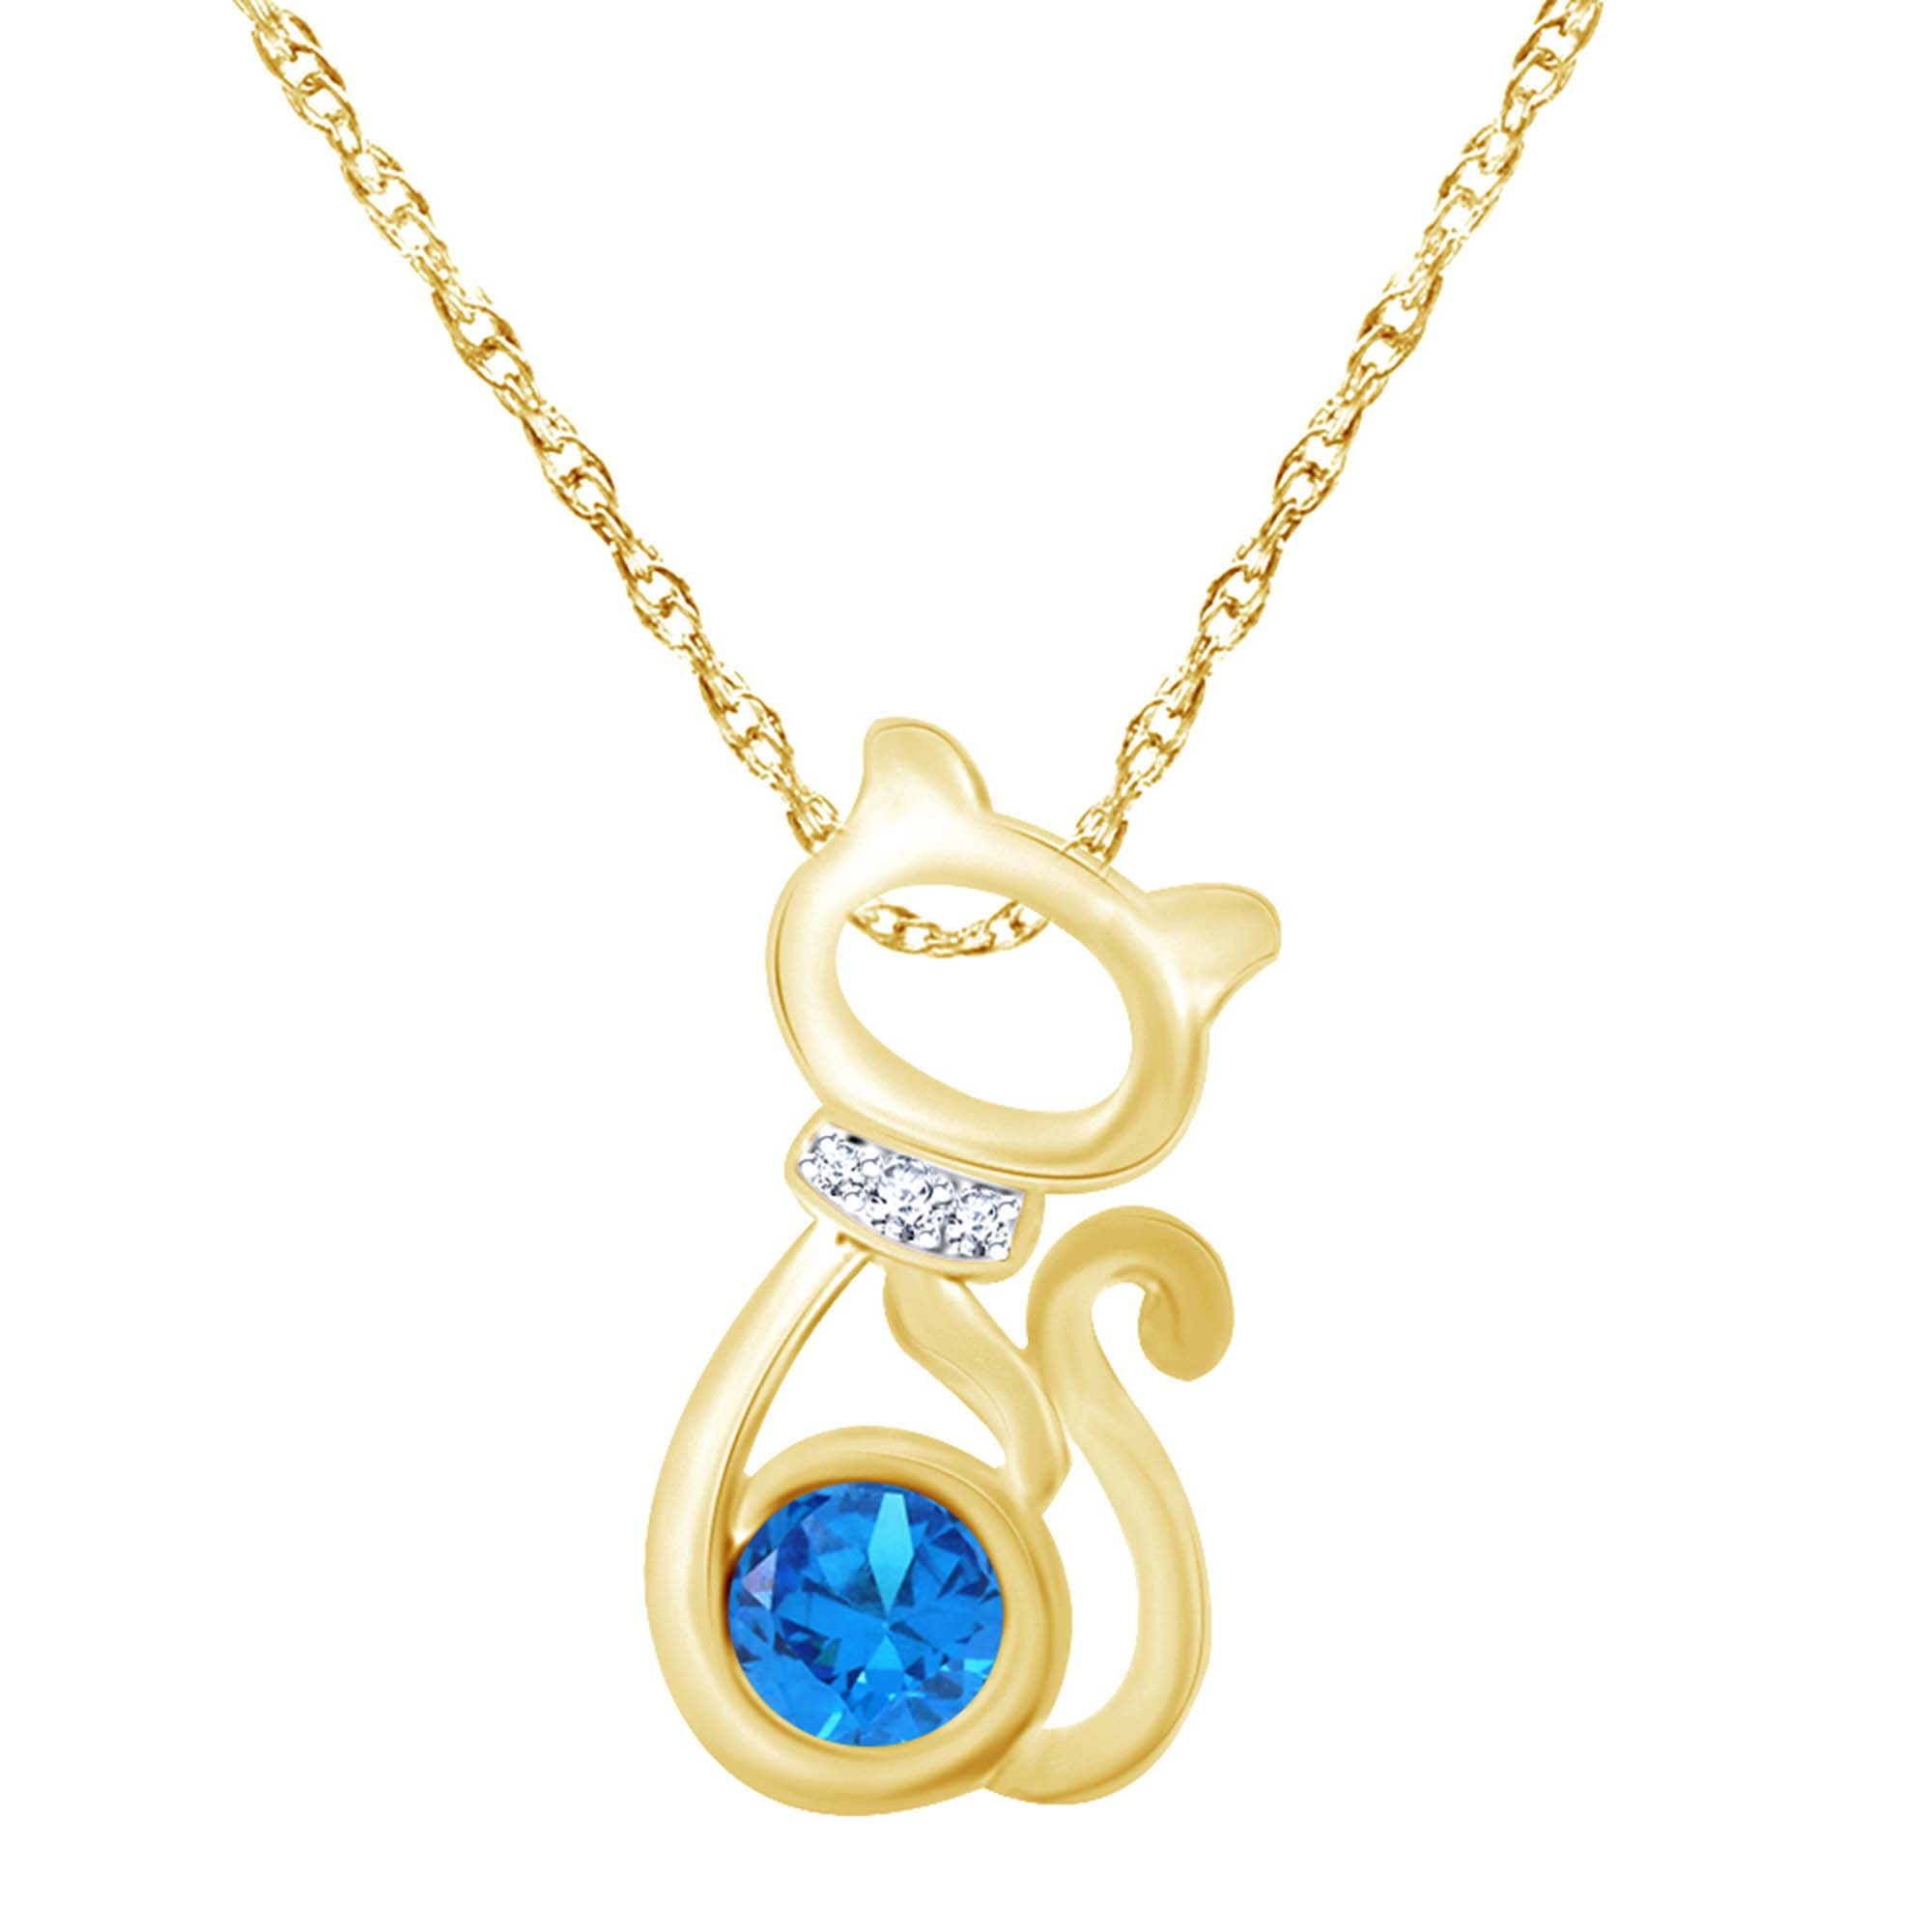 Wishrocks 14K Gold Over Sterling Silver Round Cut White CZ Heart Pendant Necklace